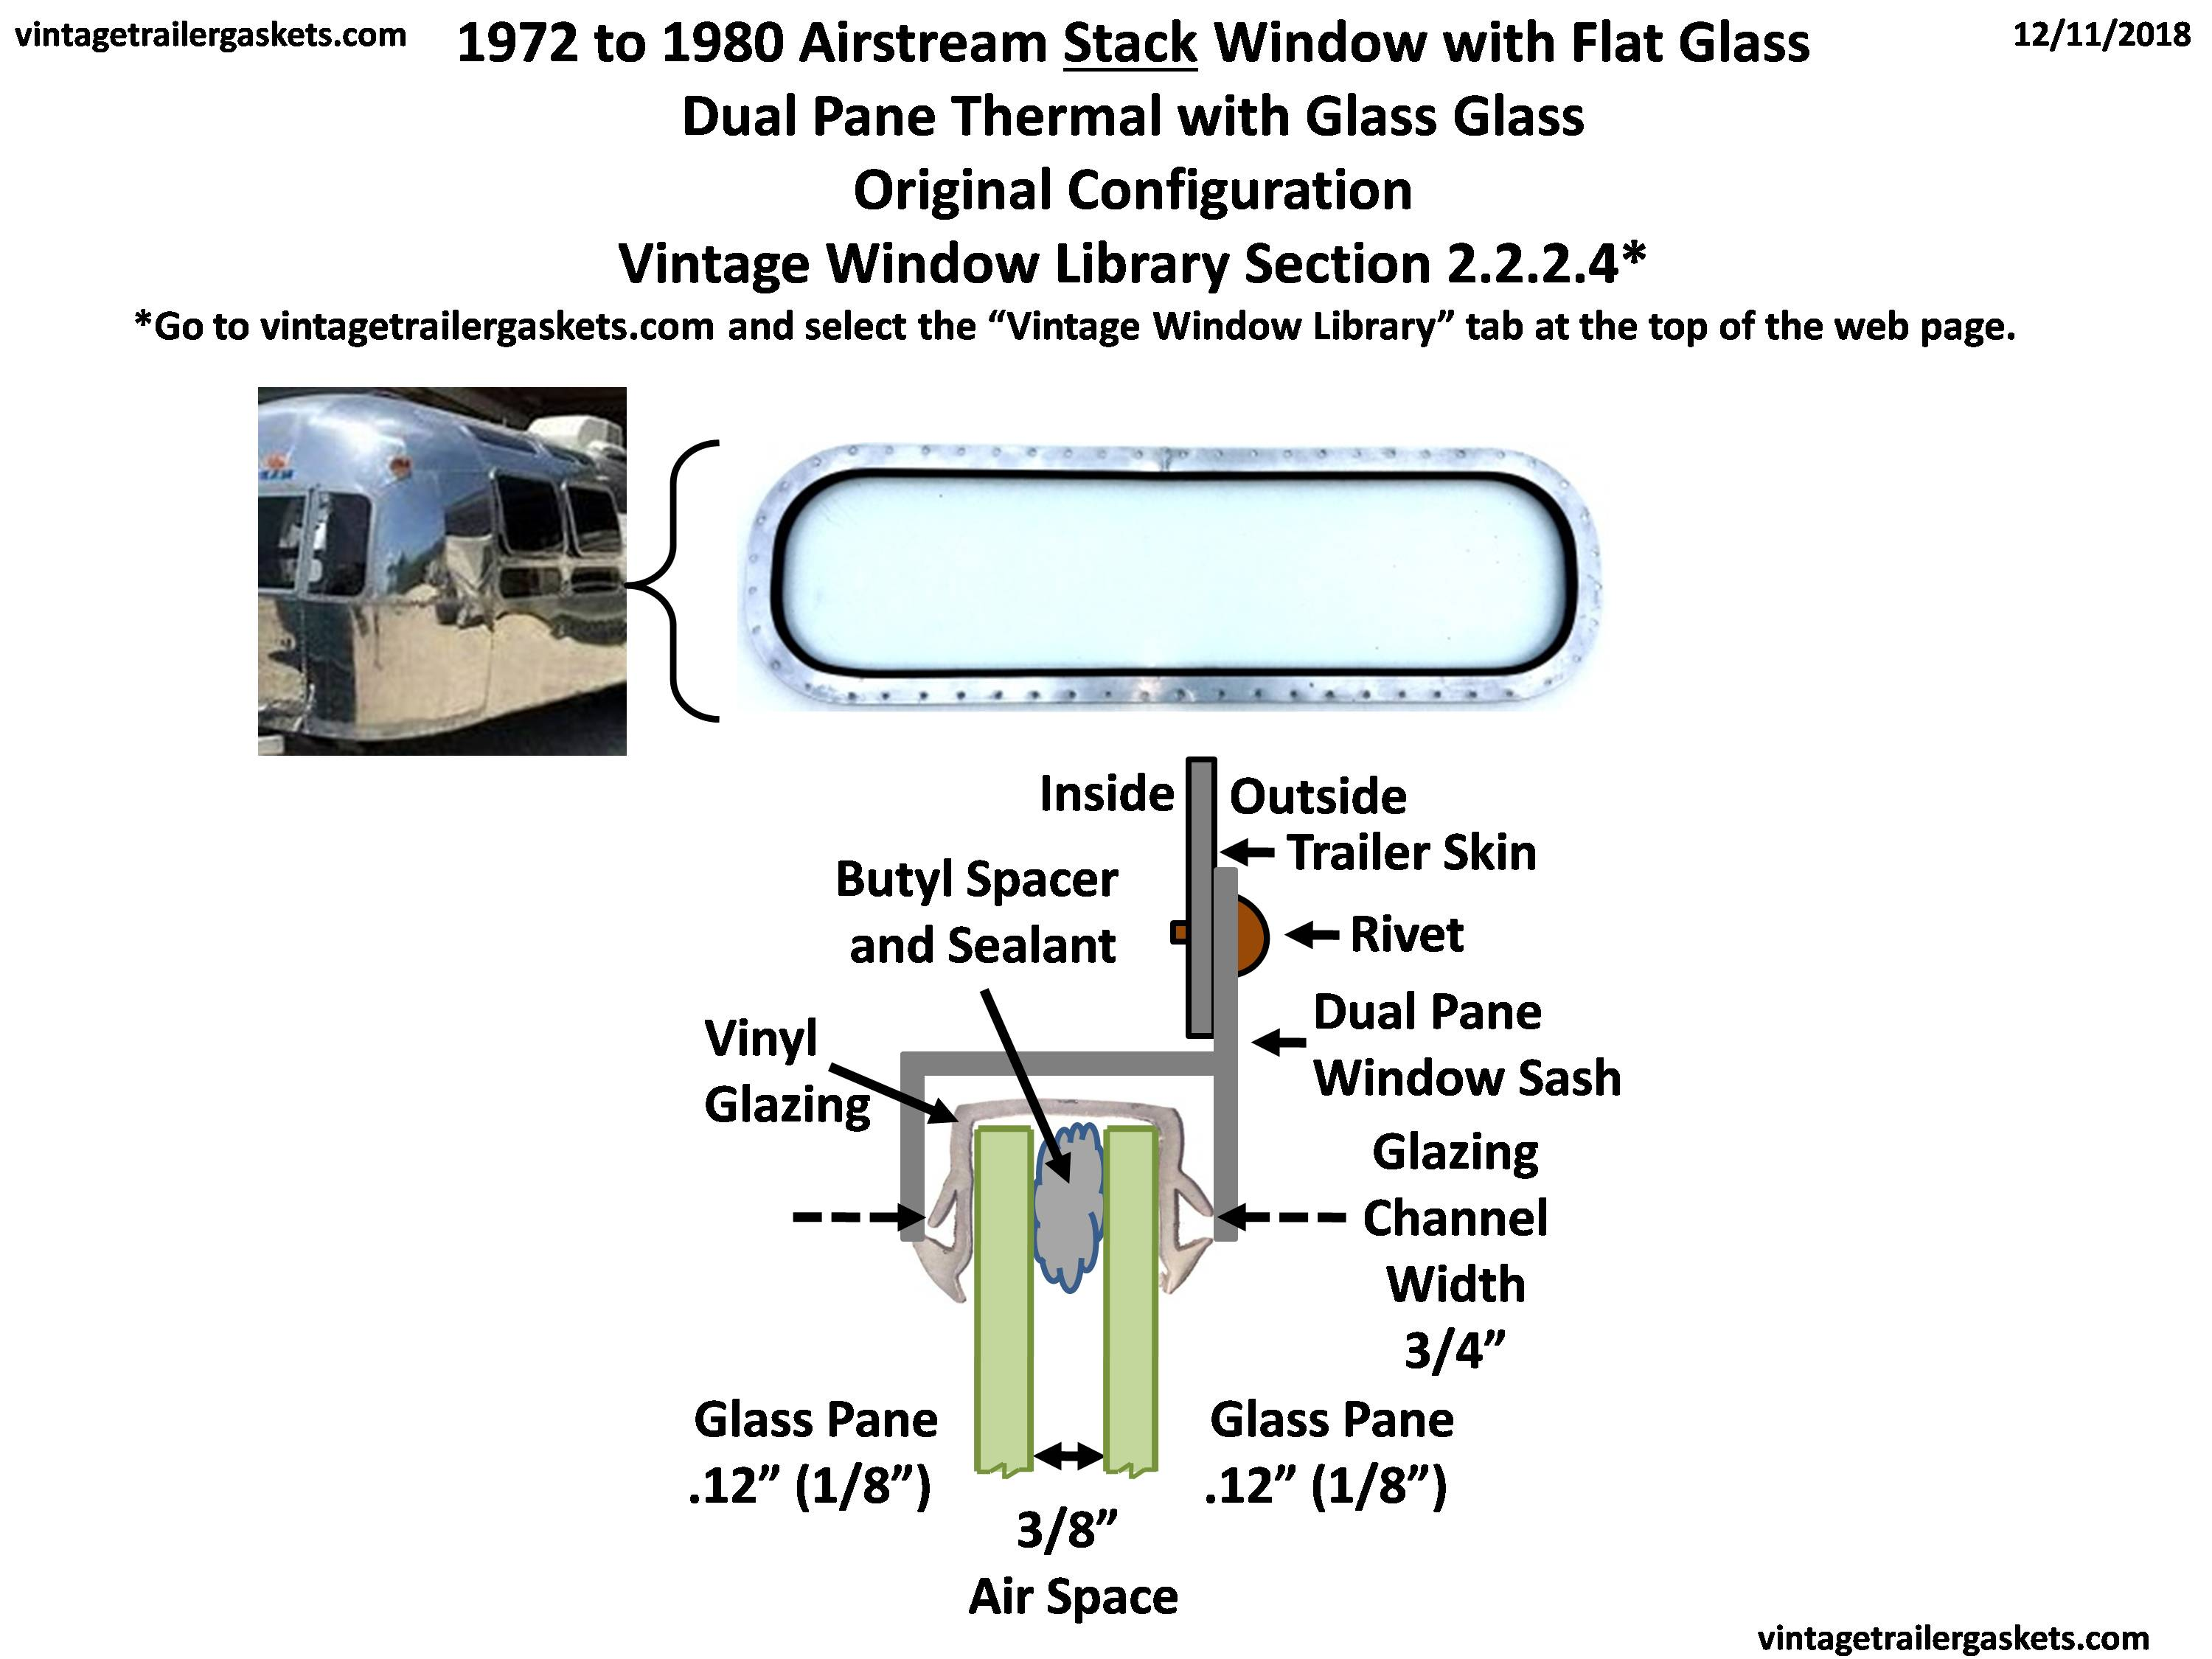 Doubleglazingdiagram01jpg Vintage Window Library Trailer Gaskets Original Configuration